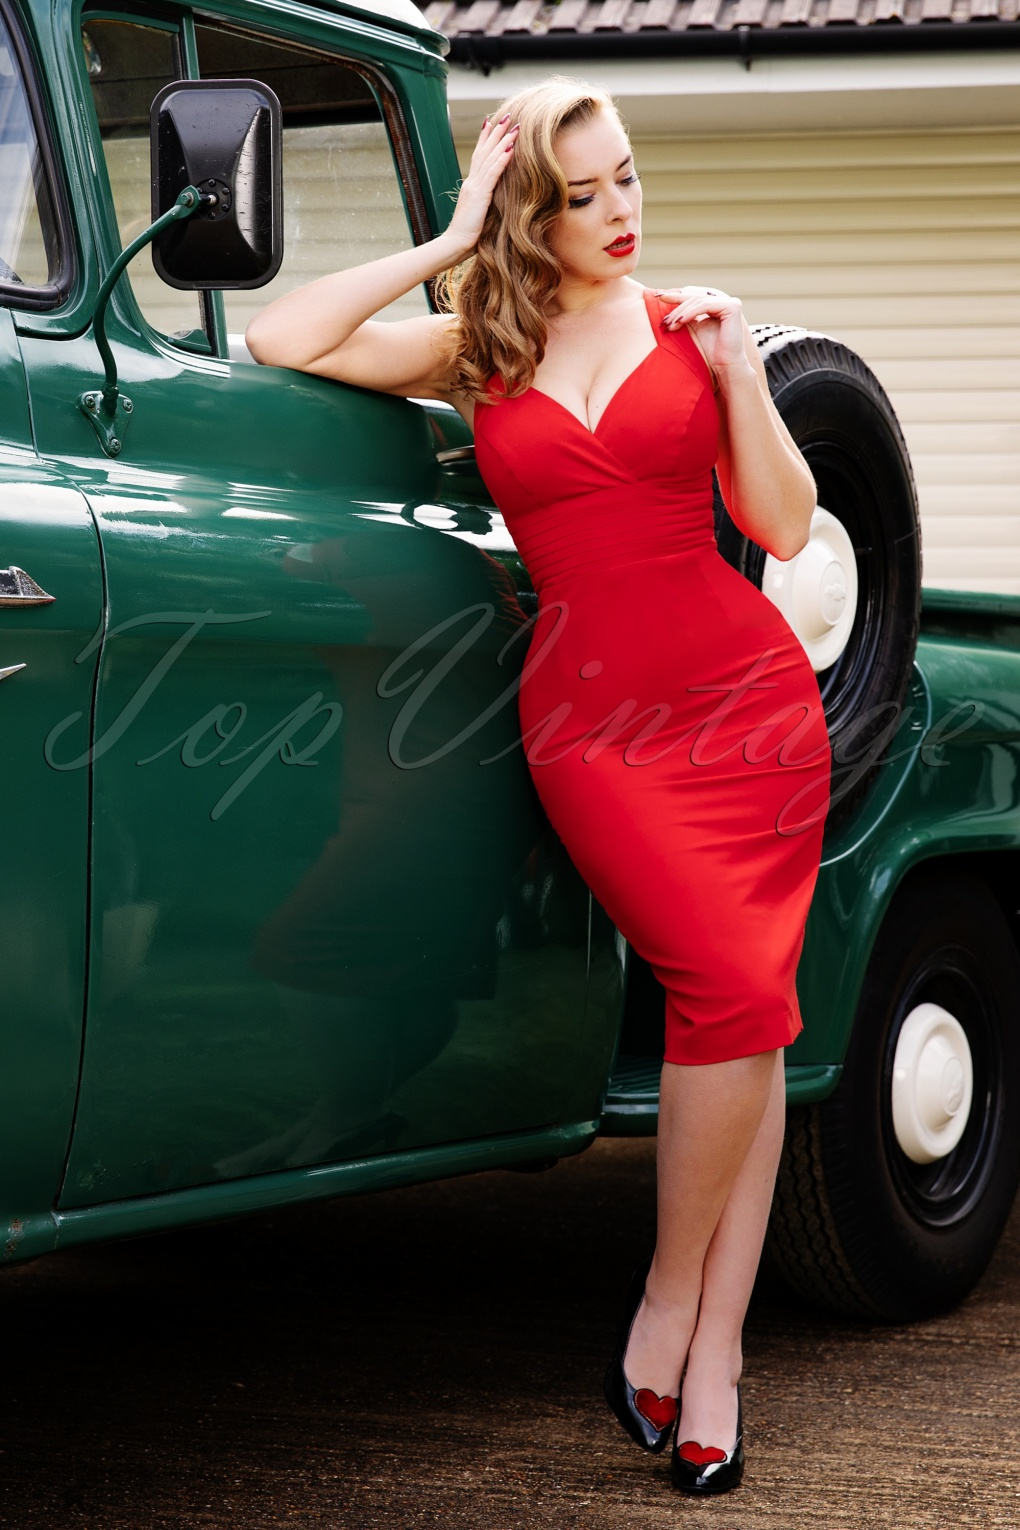 What Did Women Wear in the 1950s? 1950s Fashion Guide 50s Trinity Pencil Dress in Lipstick Red £19.95 AT vintagedancer.com